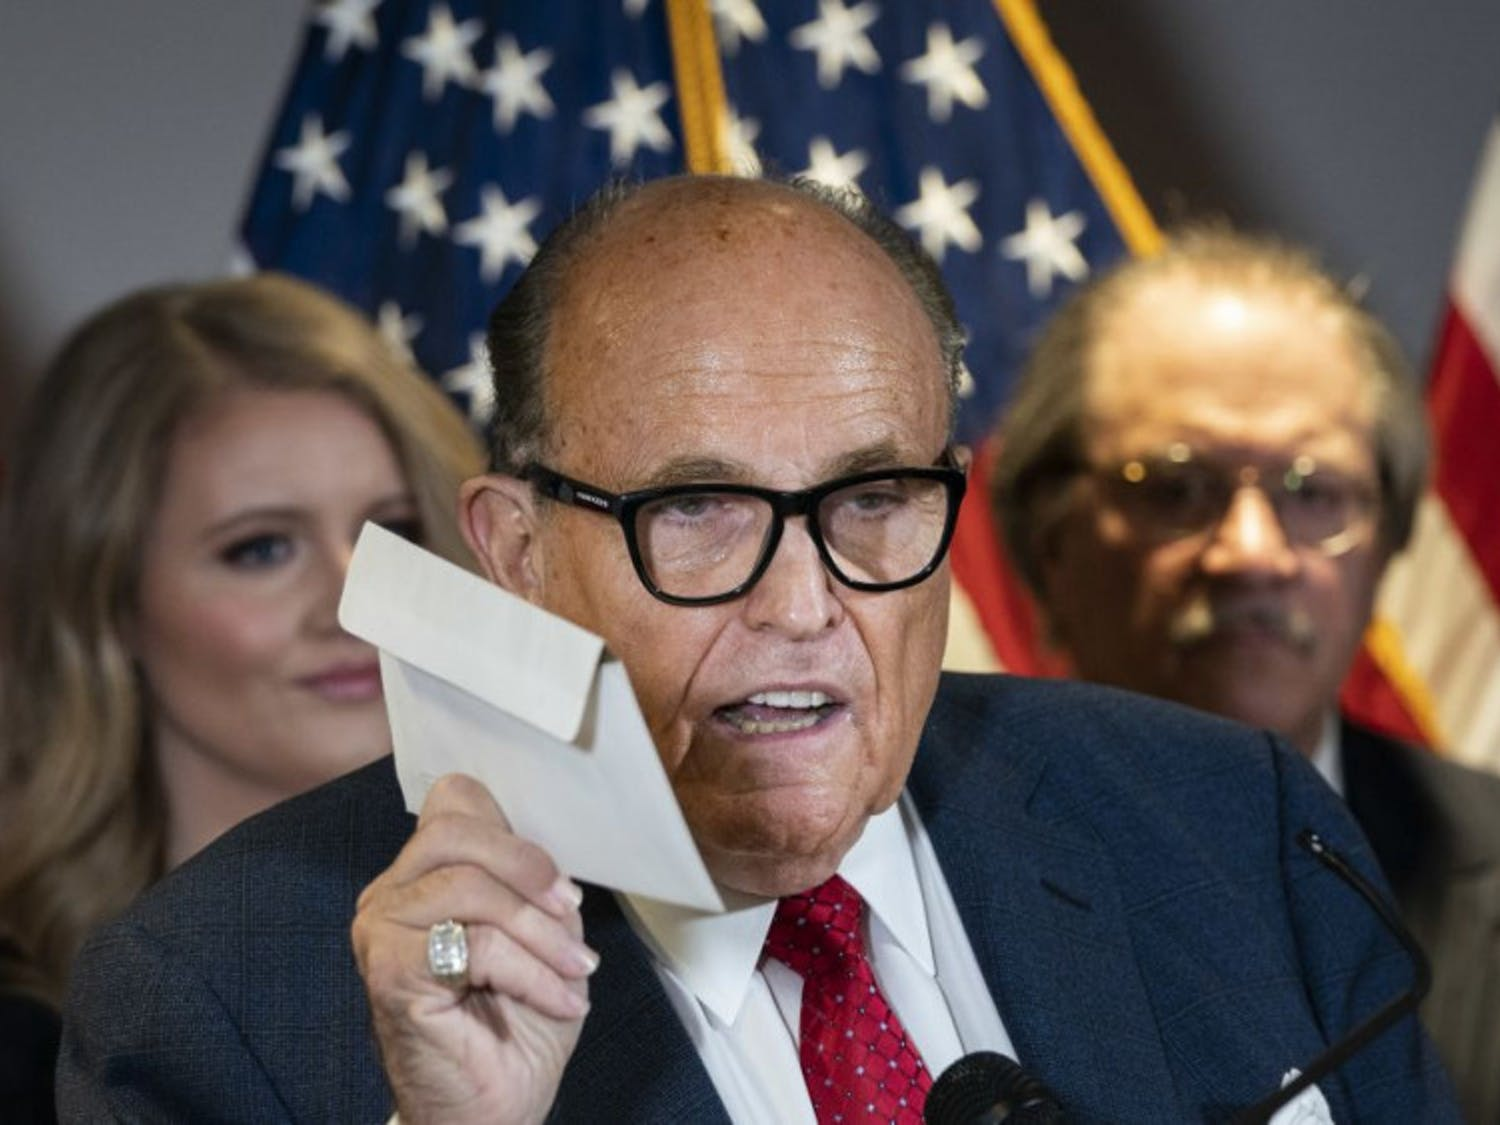 Giuliani-pic-from-online